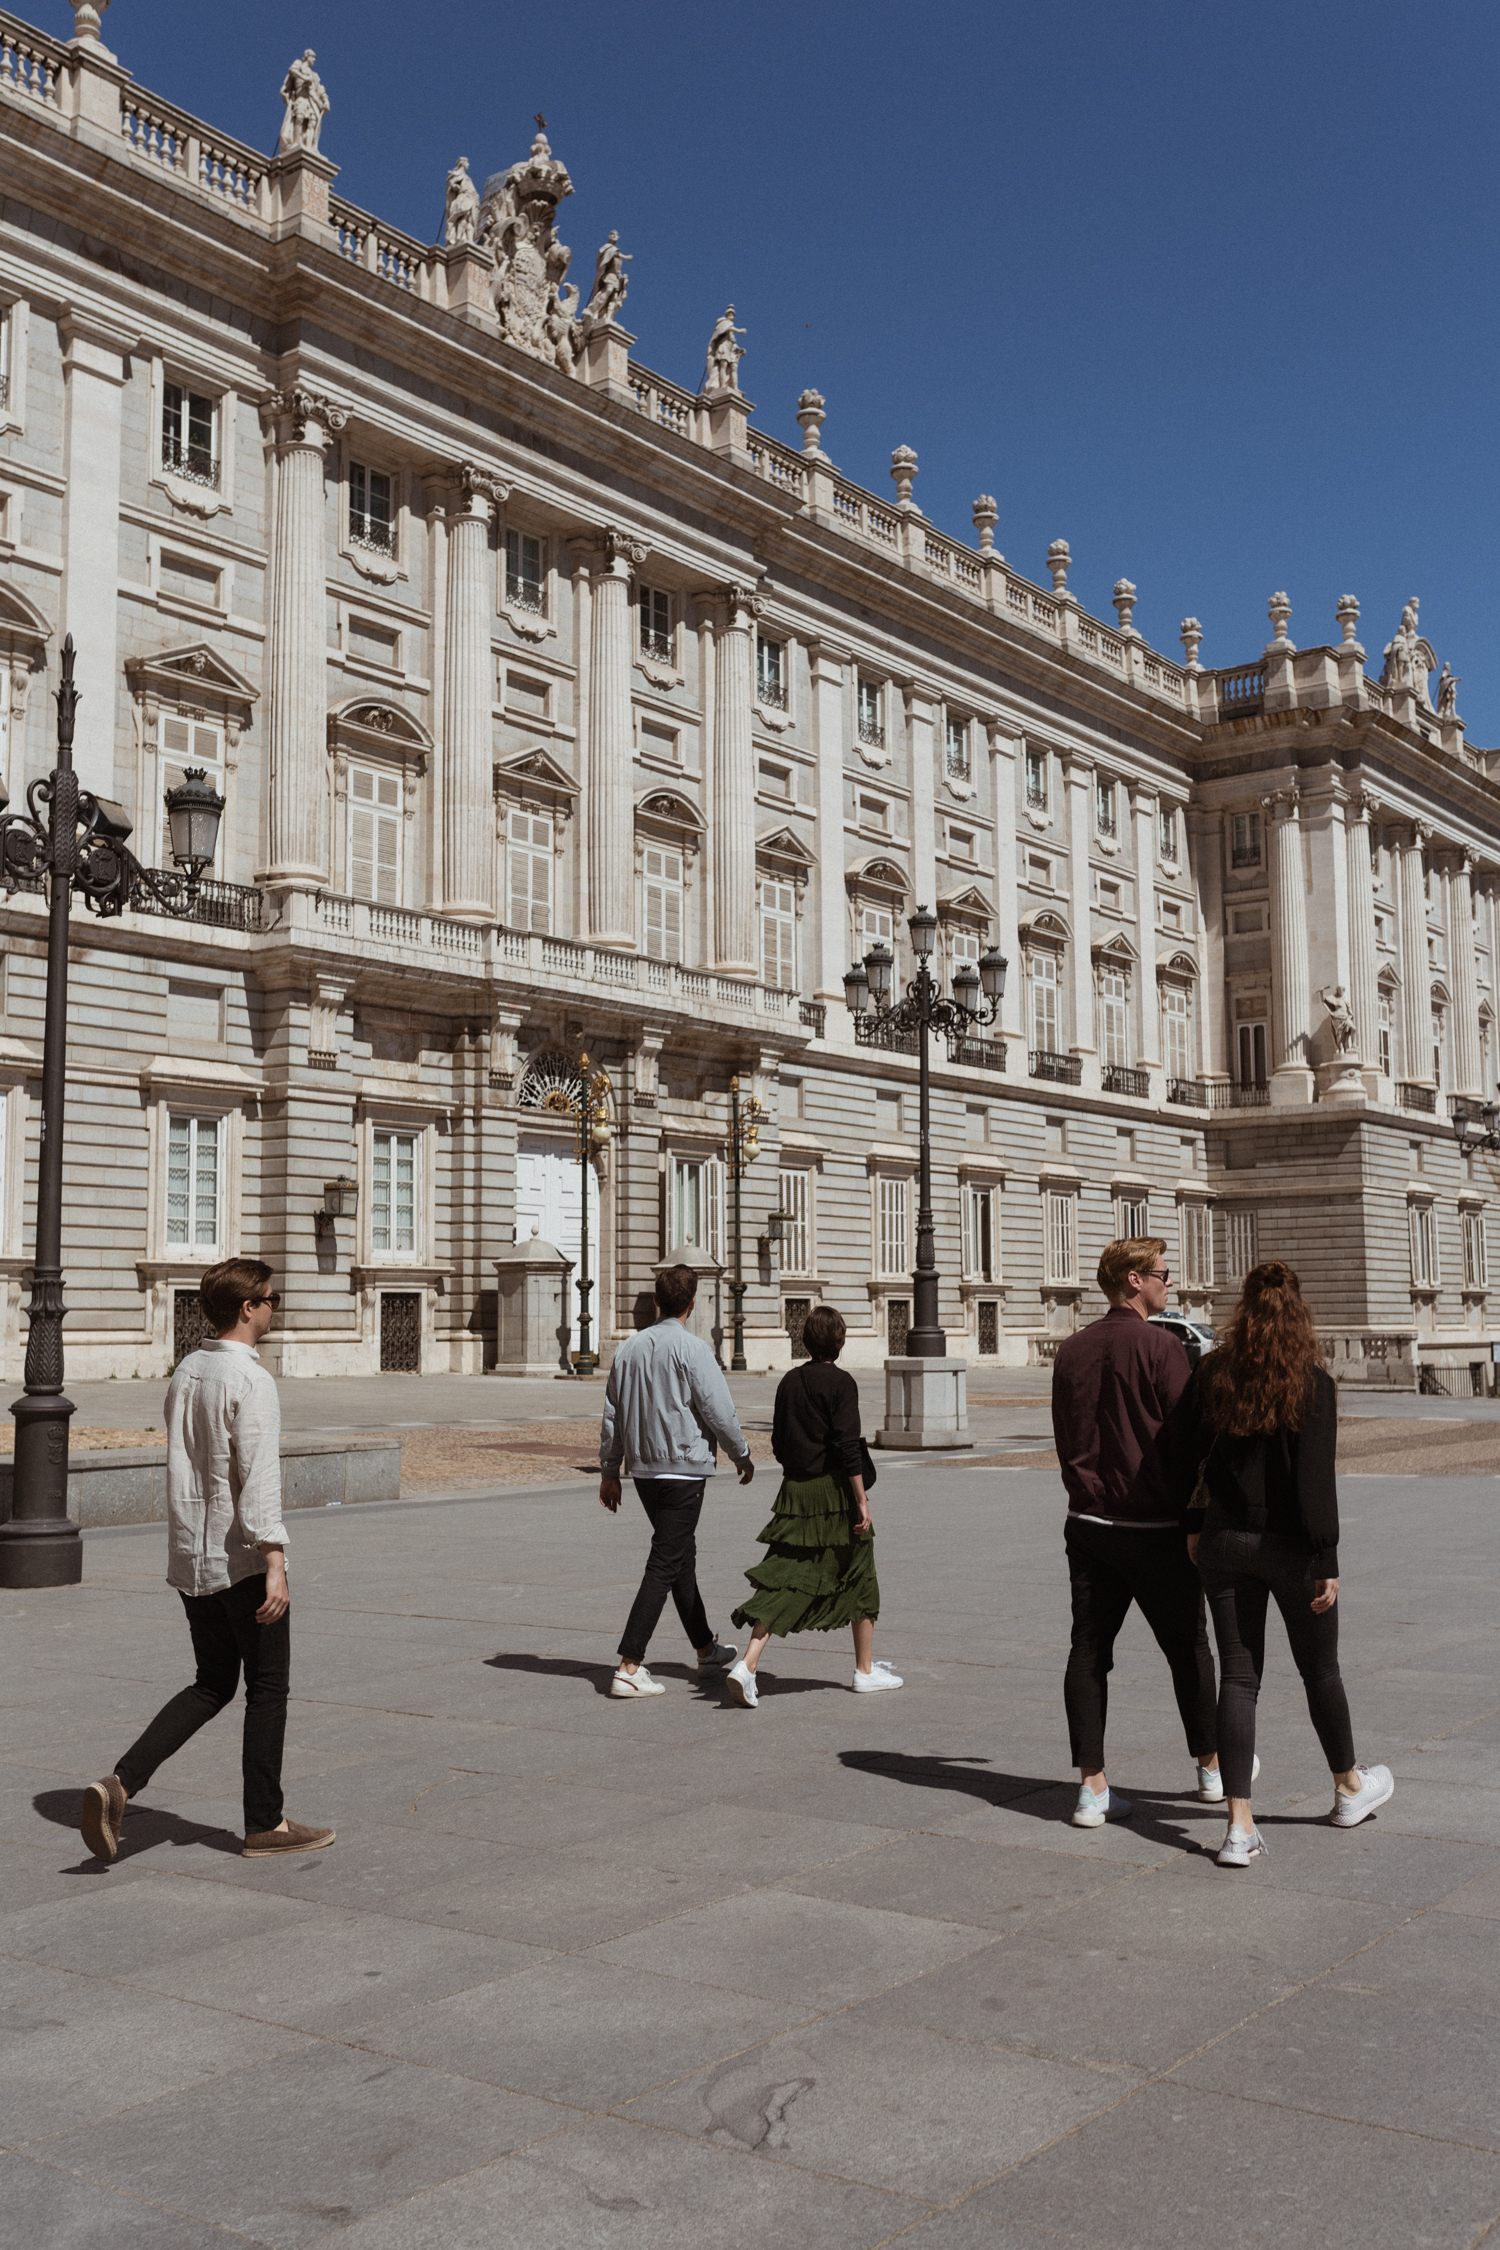 Madrid Travel Guide: Sightseeing, Food & Drinks, Hotels + Airbnb - Bikinis & Passports